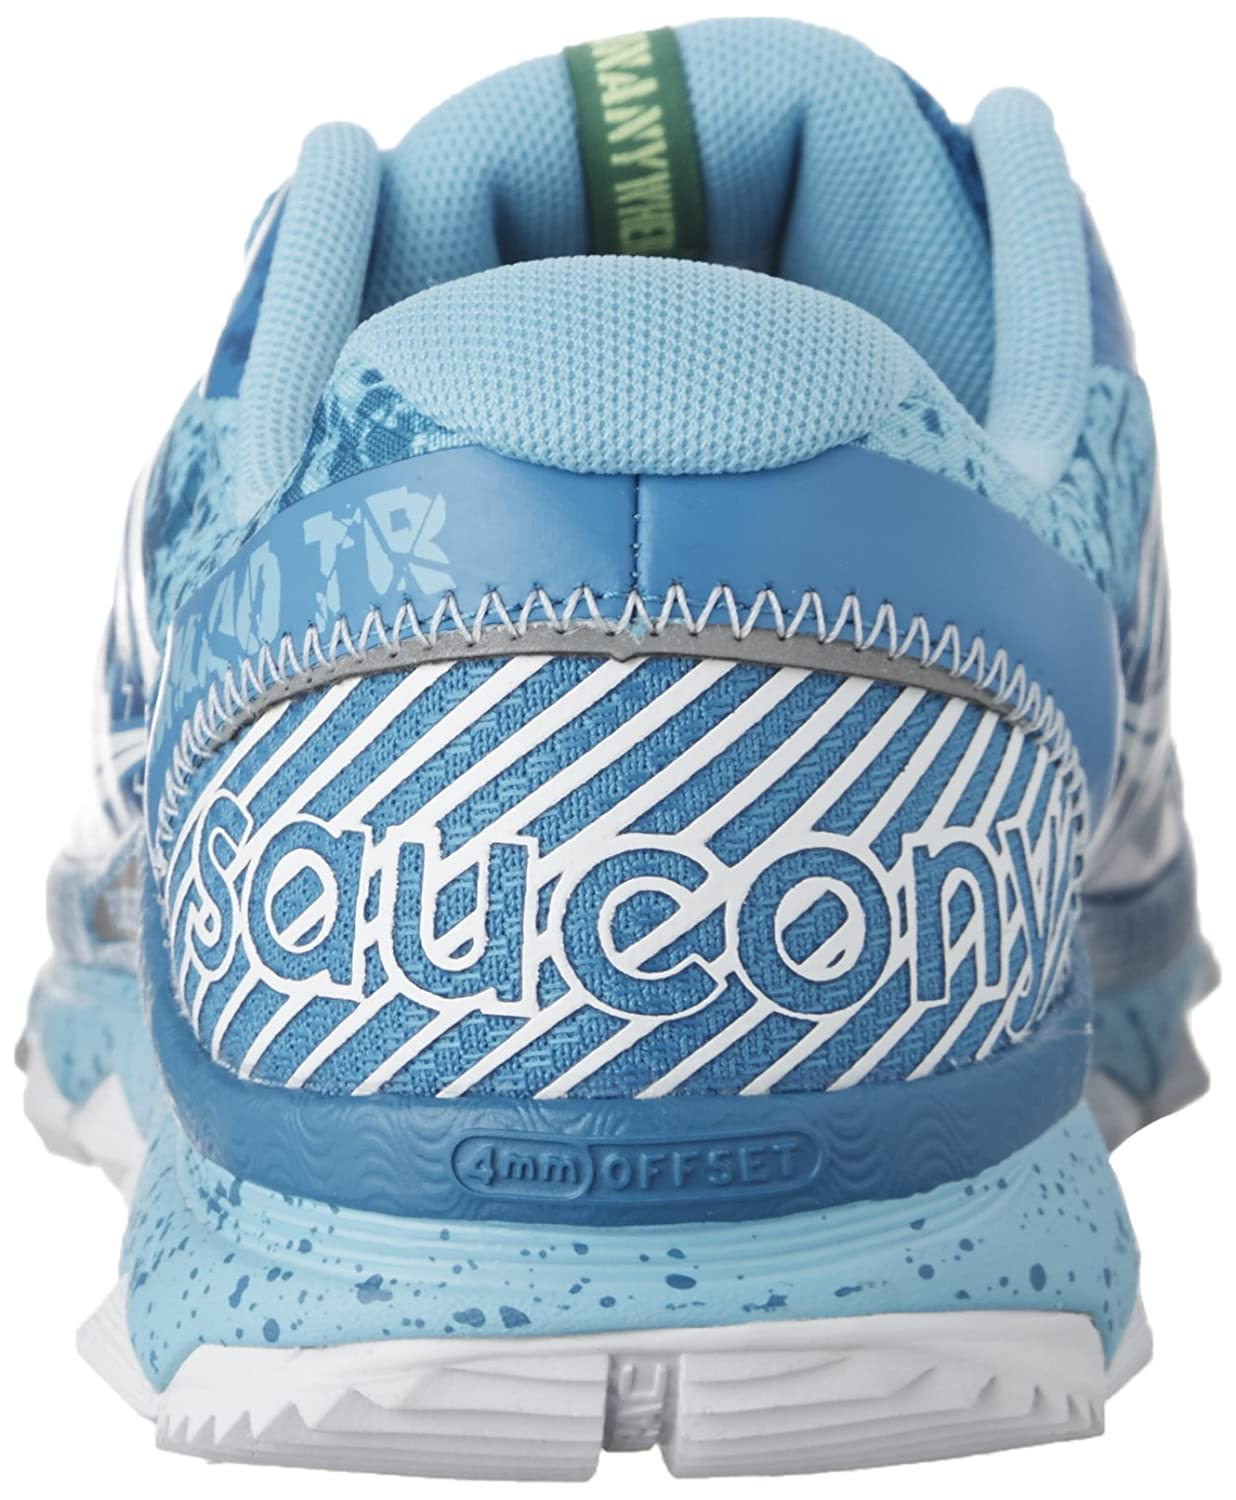 Saucony Women's Nomad TR Trail Running Shoe B00ZVDLYW4 8.5 B(M) US|Blue | White